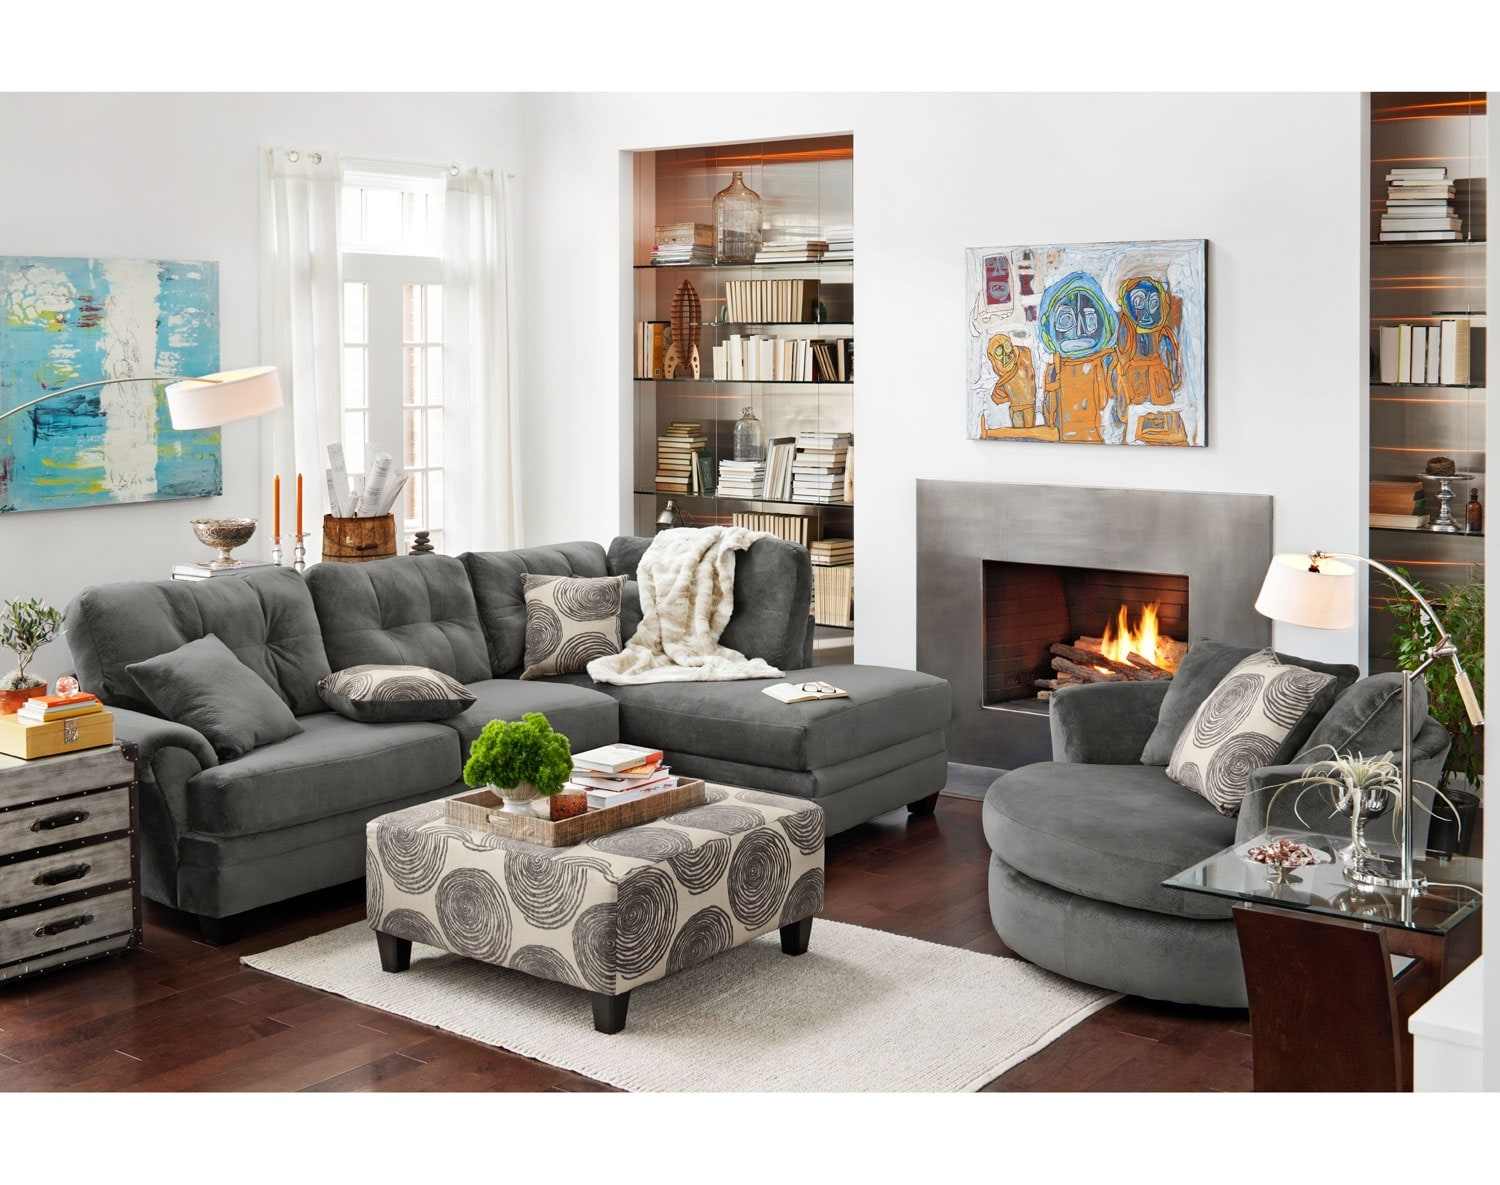 search results - value city furniture | value city furniture